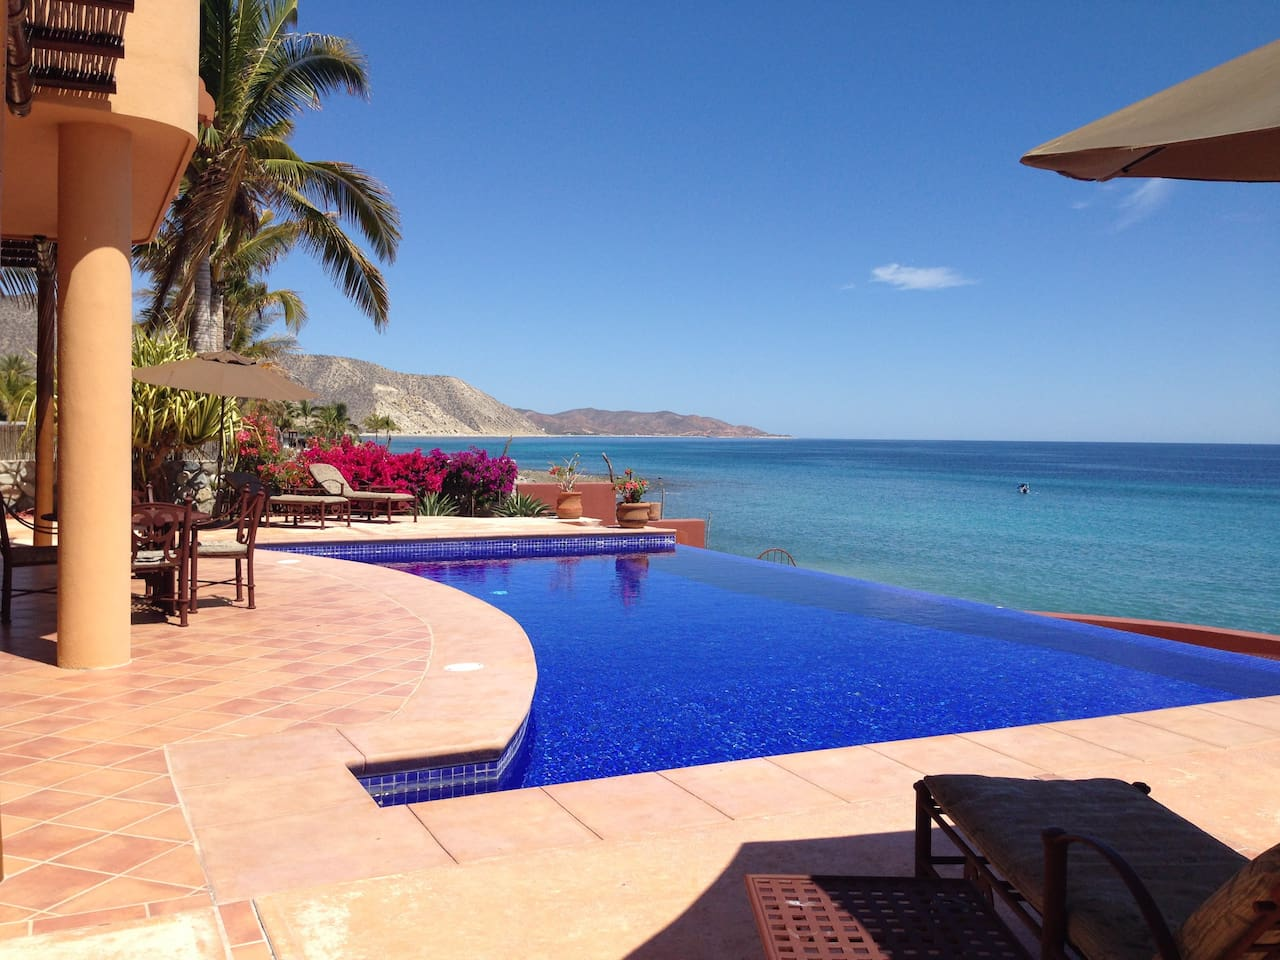 Infinity edge pool looking over the Seat of Cortez